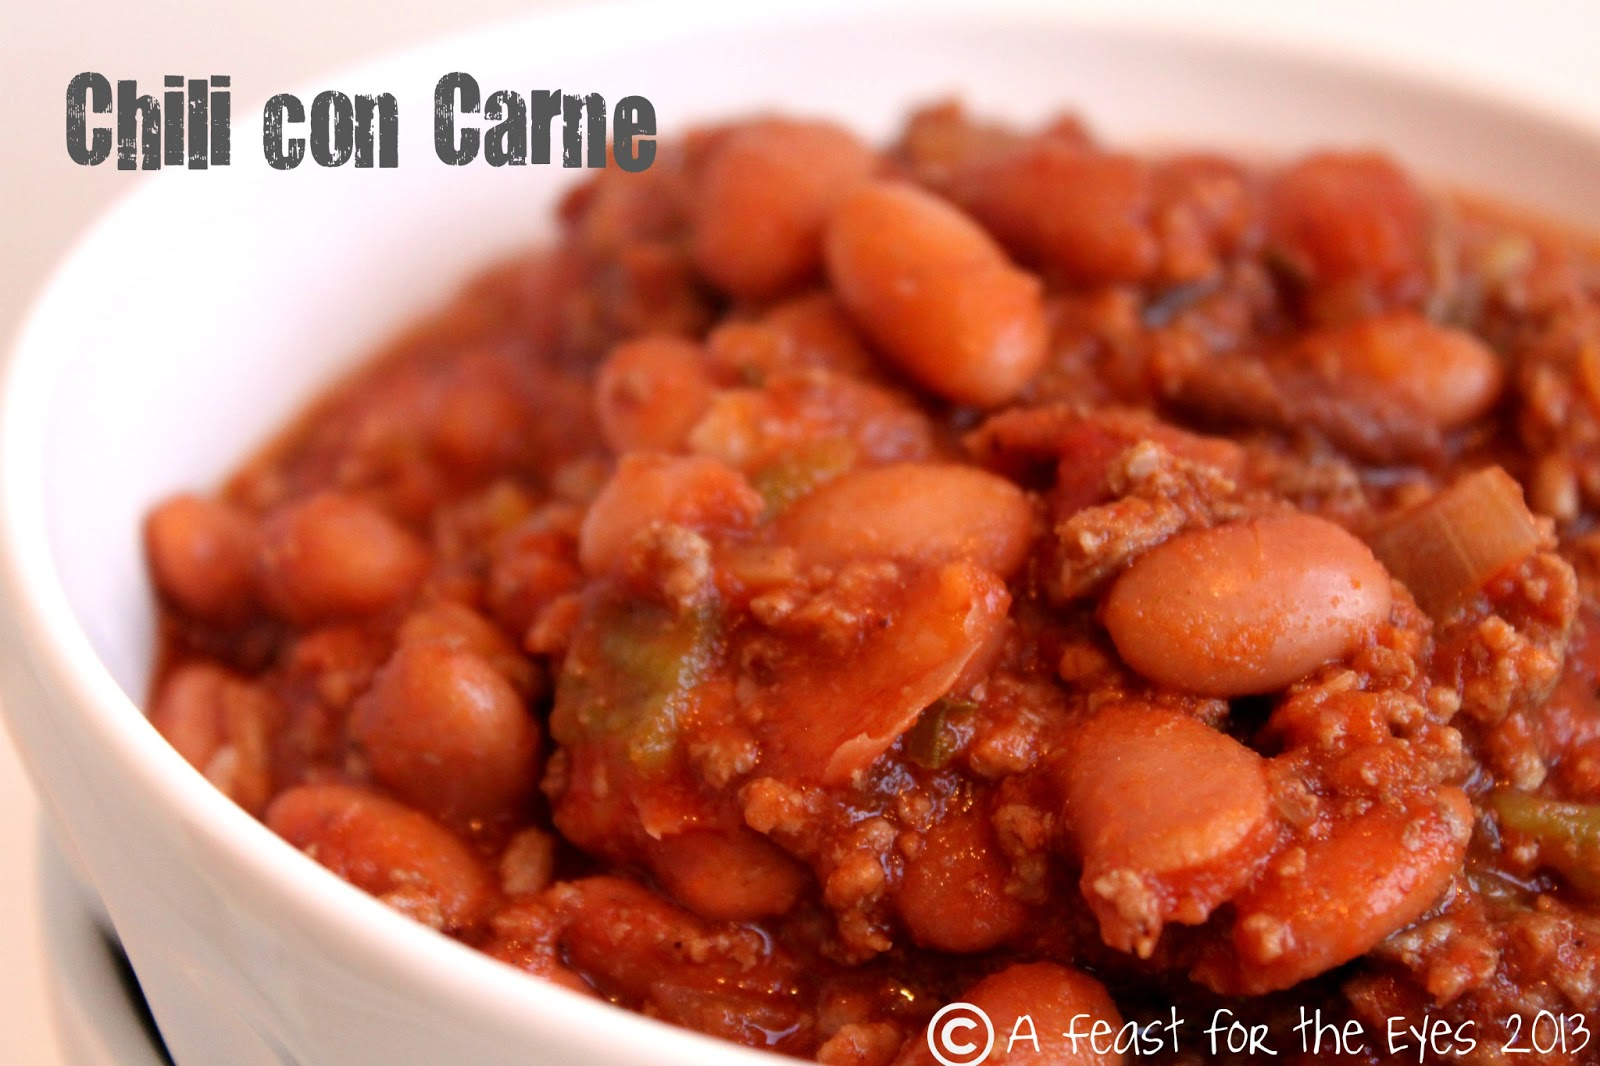 Feast for the Eyes: Chili Con Carne, My Way